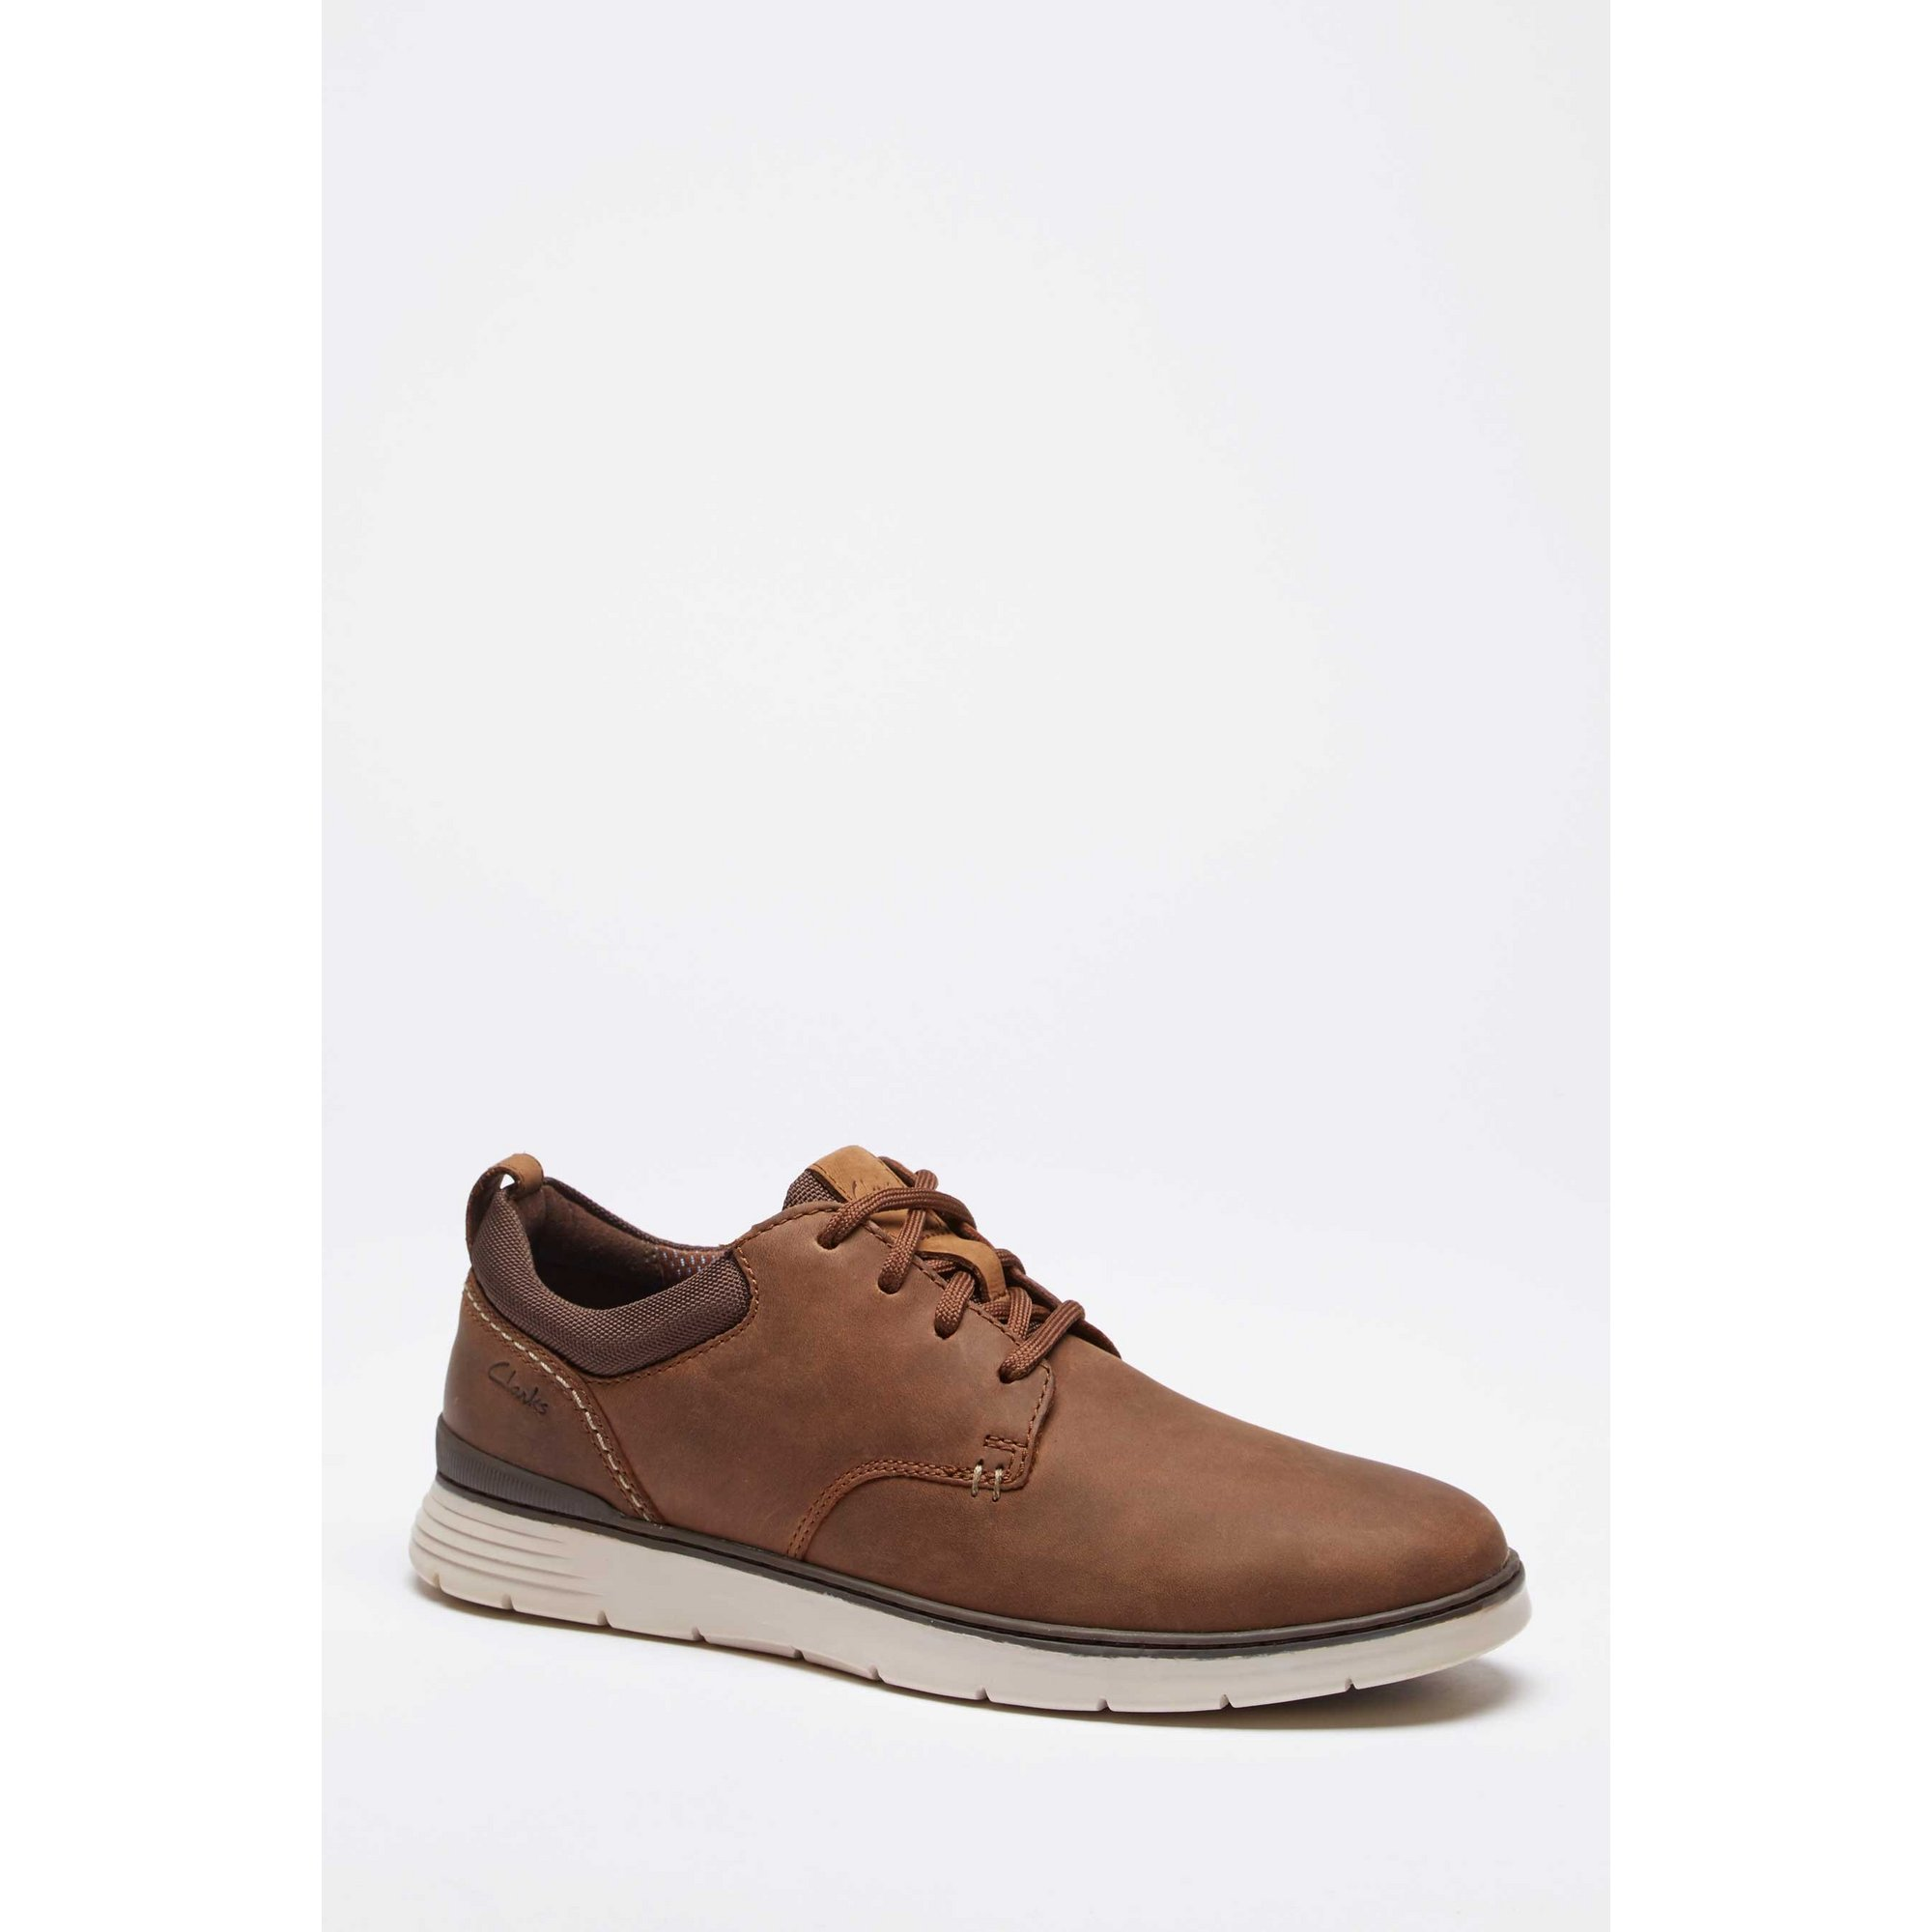 Image of Clarks Braxin Low Lace Up Shoes